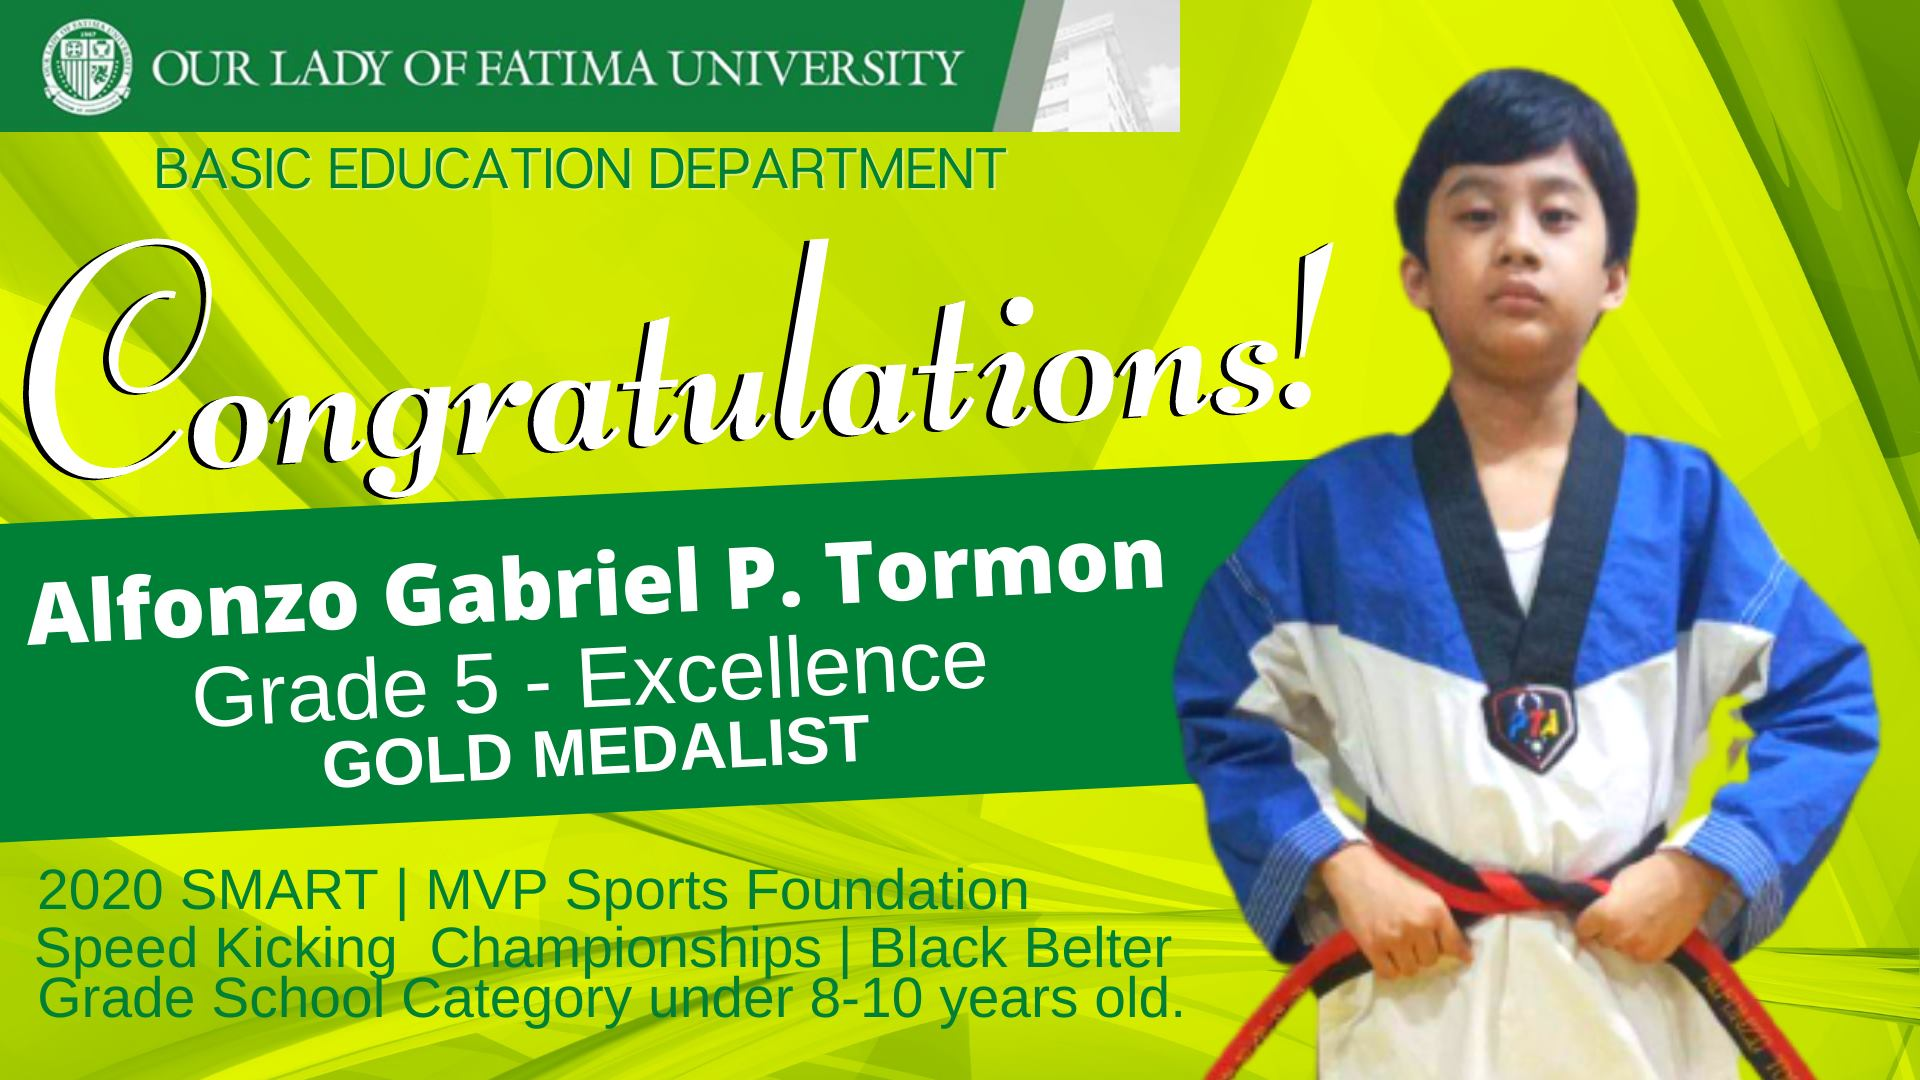 Basic Education Department's Alfonzo Gabriel Tormon wins Gold in National Inter-School Tilt